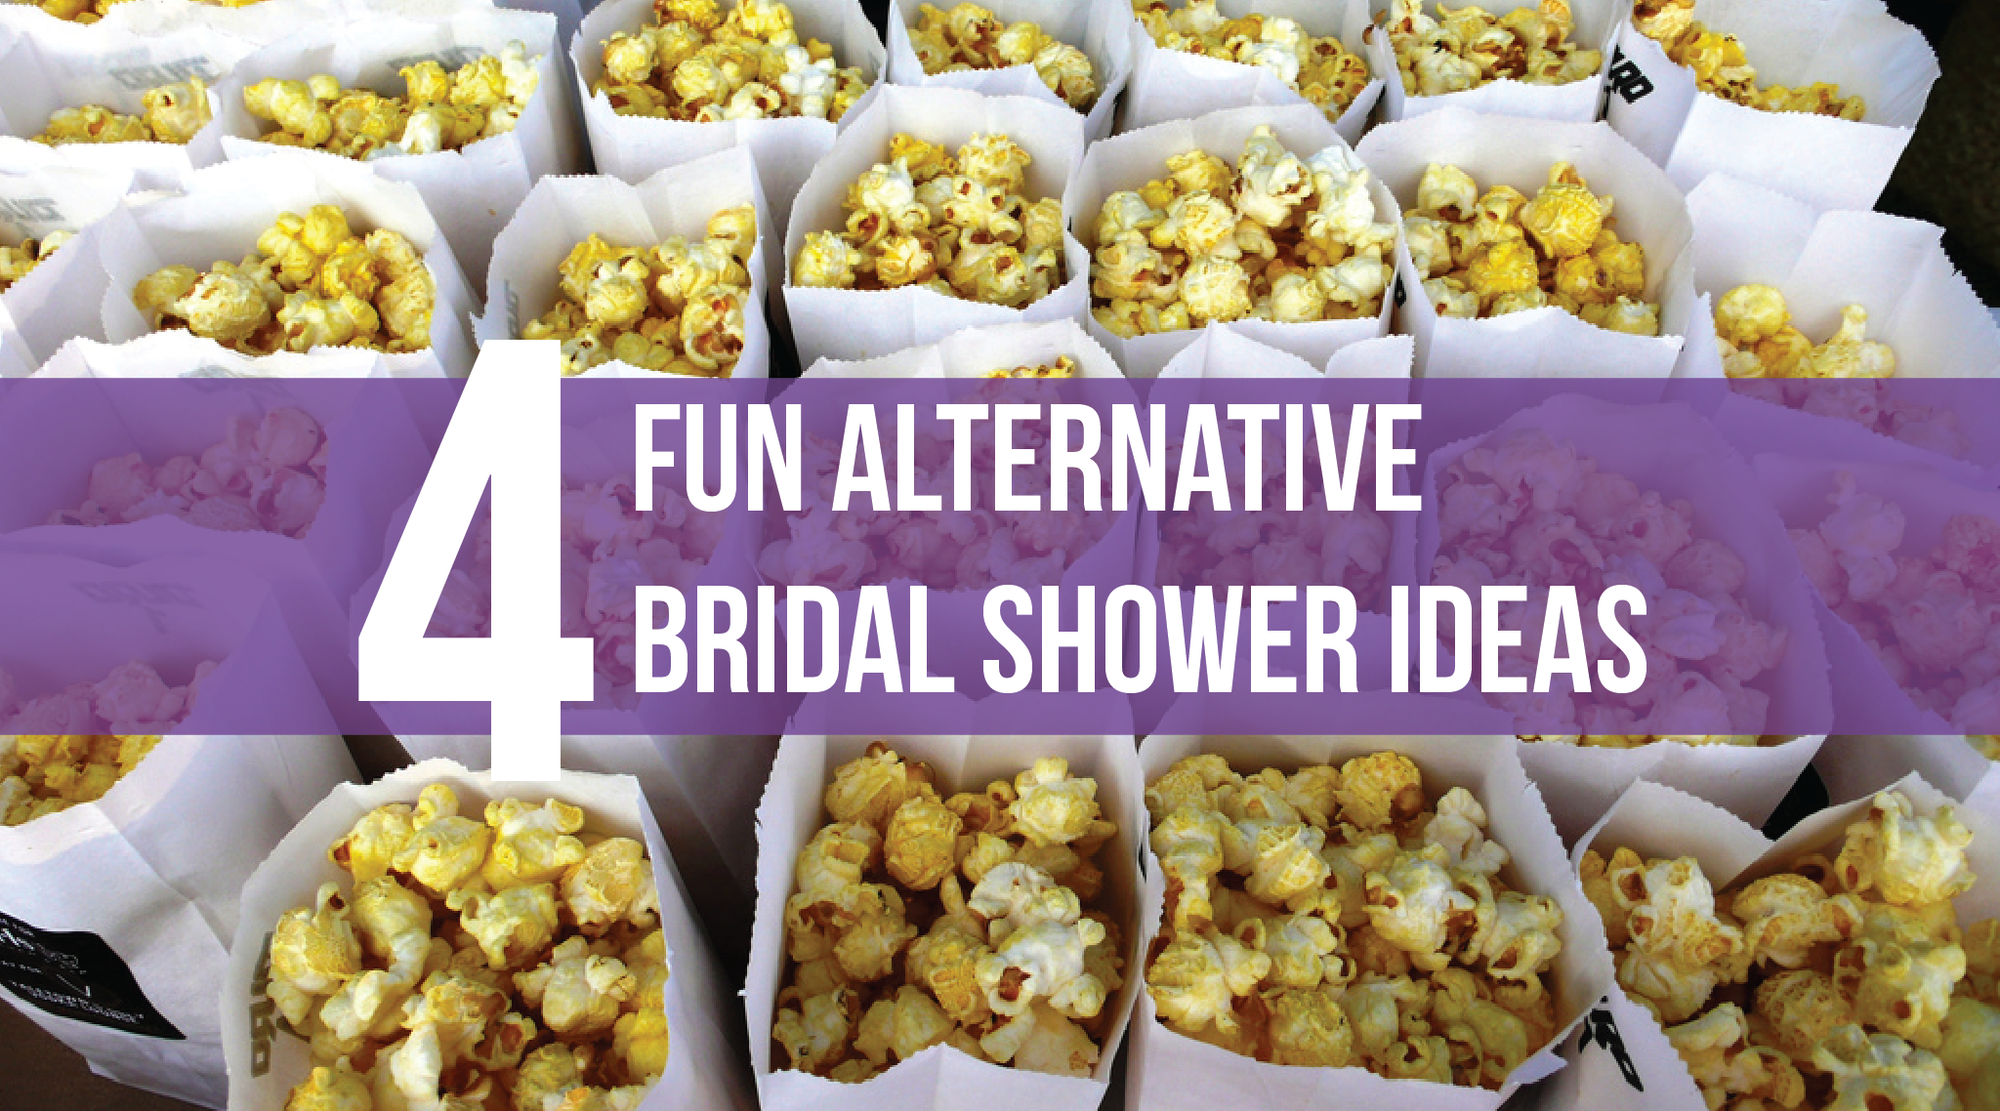 4 Fun Alternative Bridal Shower Ideas